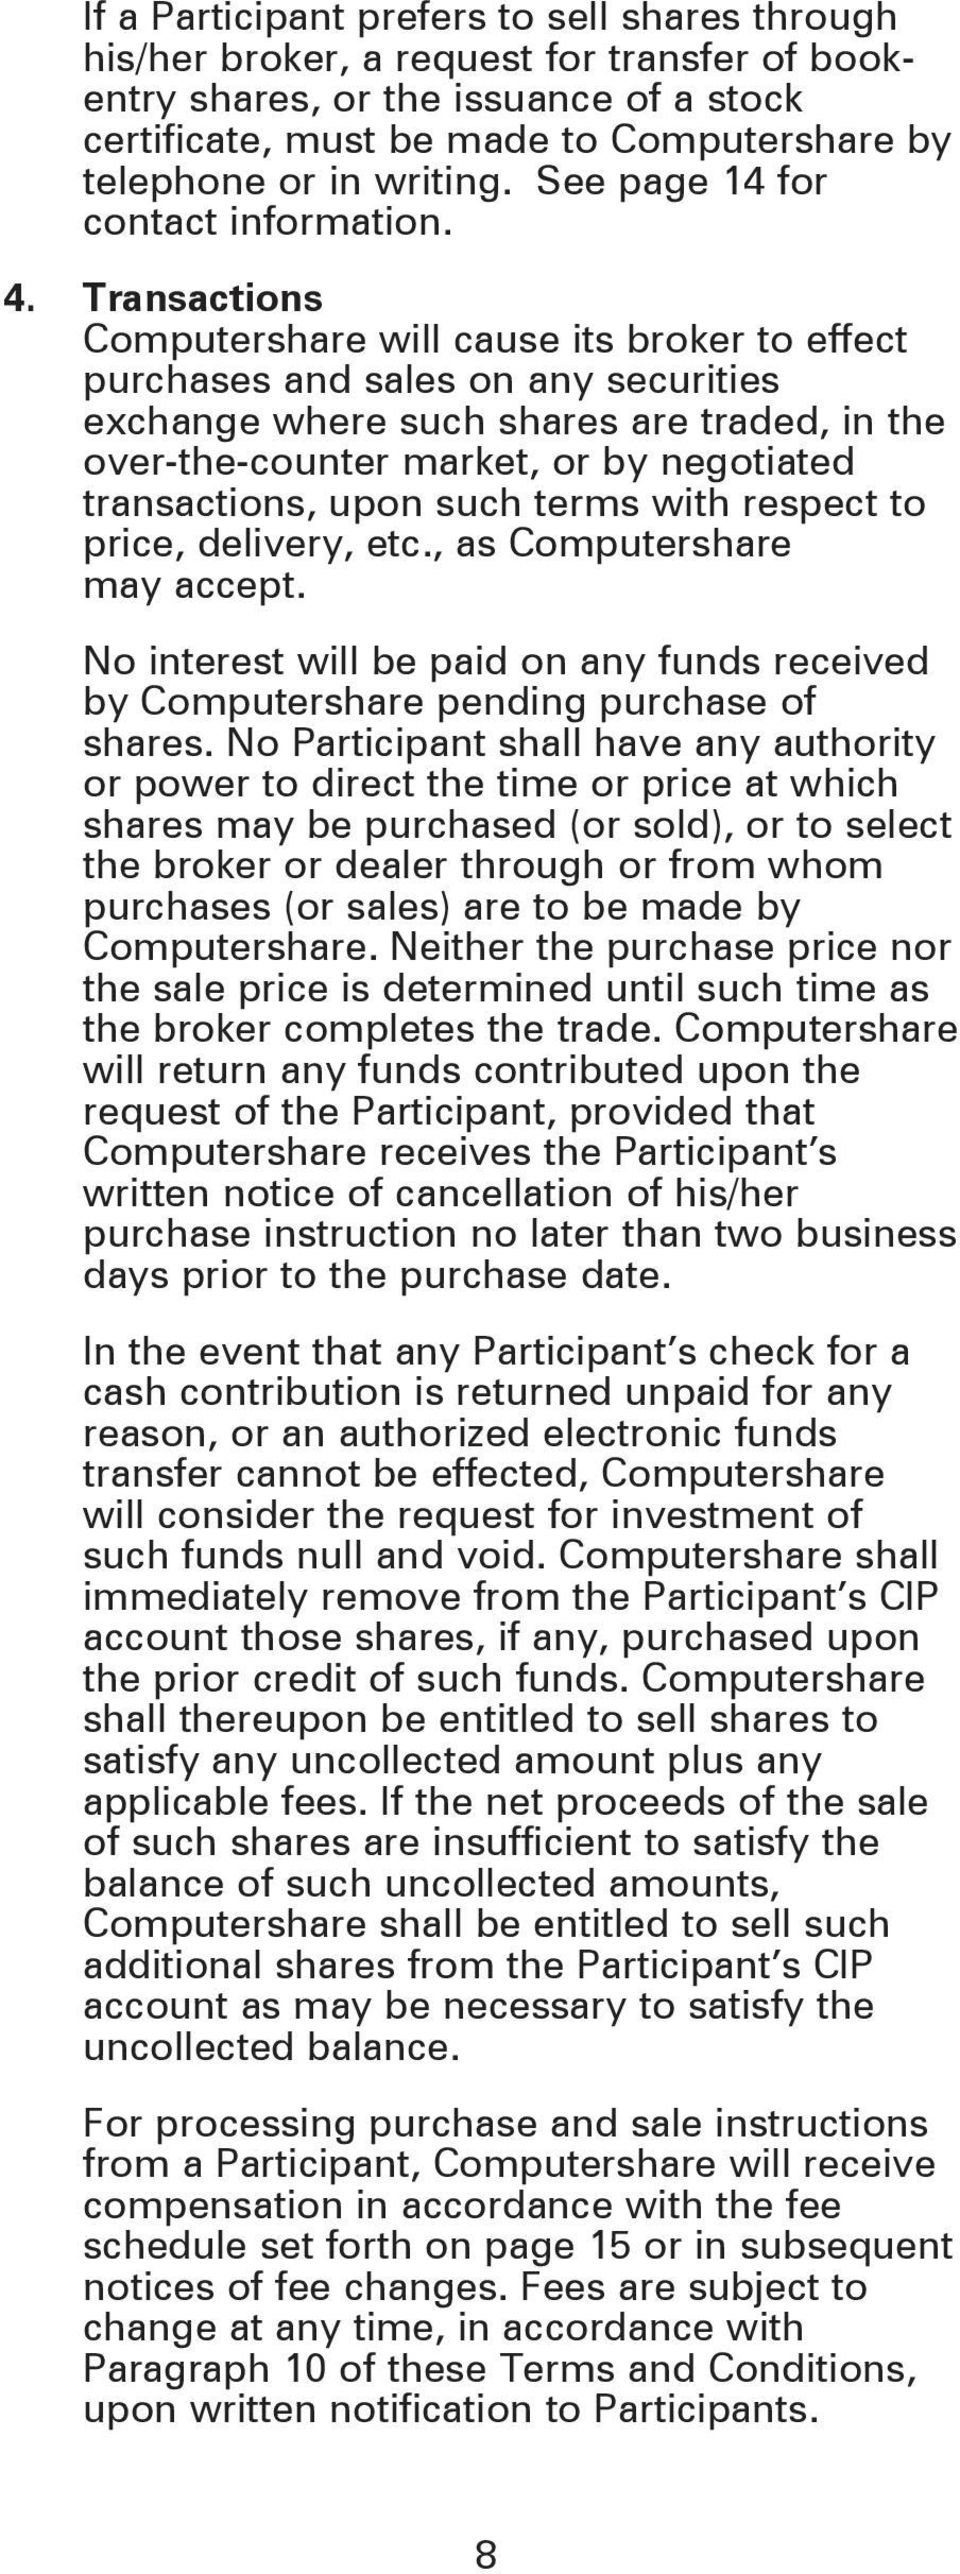 Transactions Computershare will cause its broker to effect purchases and sales on any securities exchange where such shares are traded, in the over-the-counter market, or by negotiated transactions,